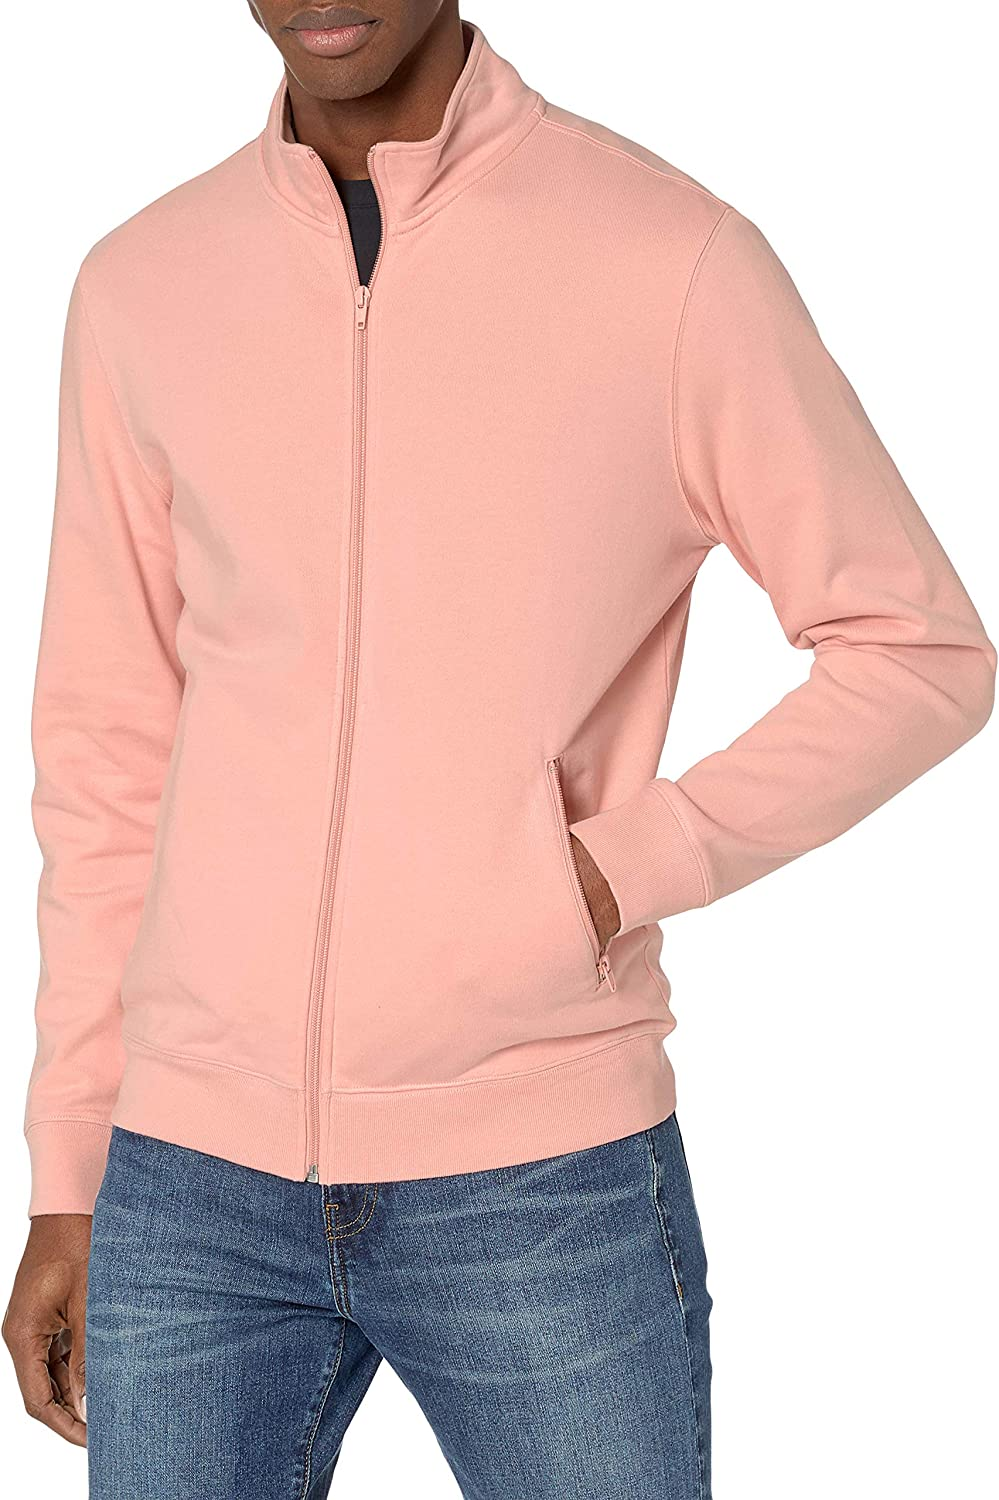 athletic-warm-up-and-track-jackets Hombre Marca Goodthreads Lightweight French Terry Track Jacket